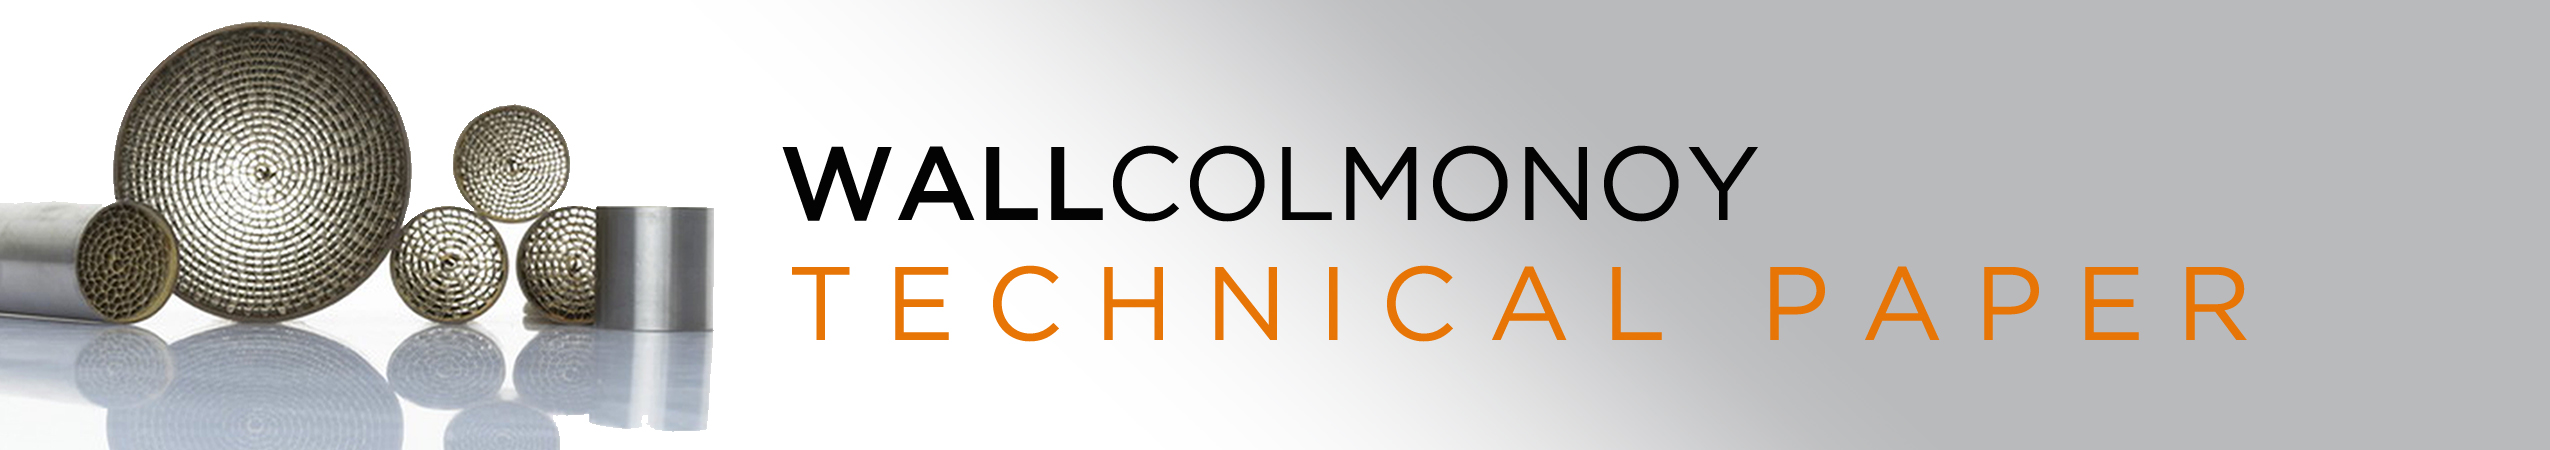 WallColmonoy Tech Paper